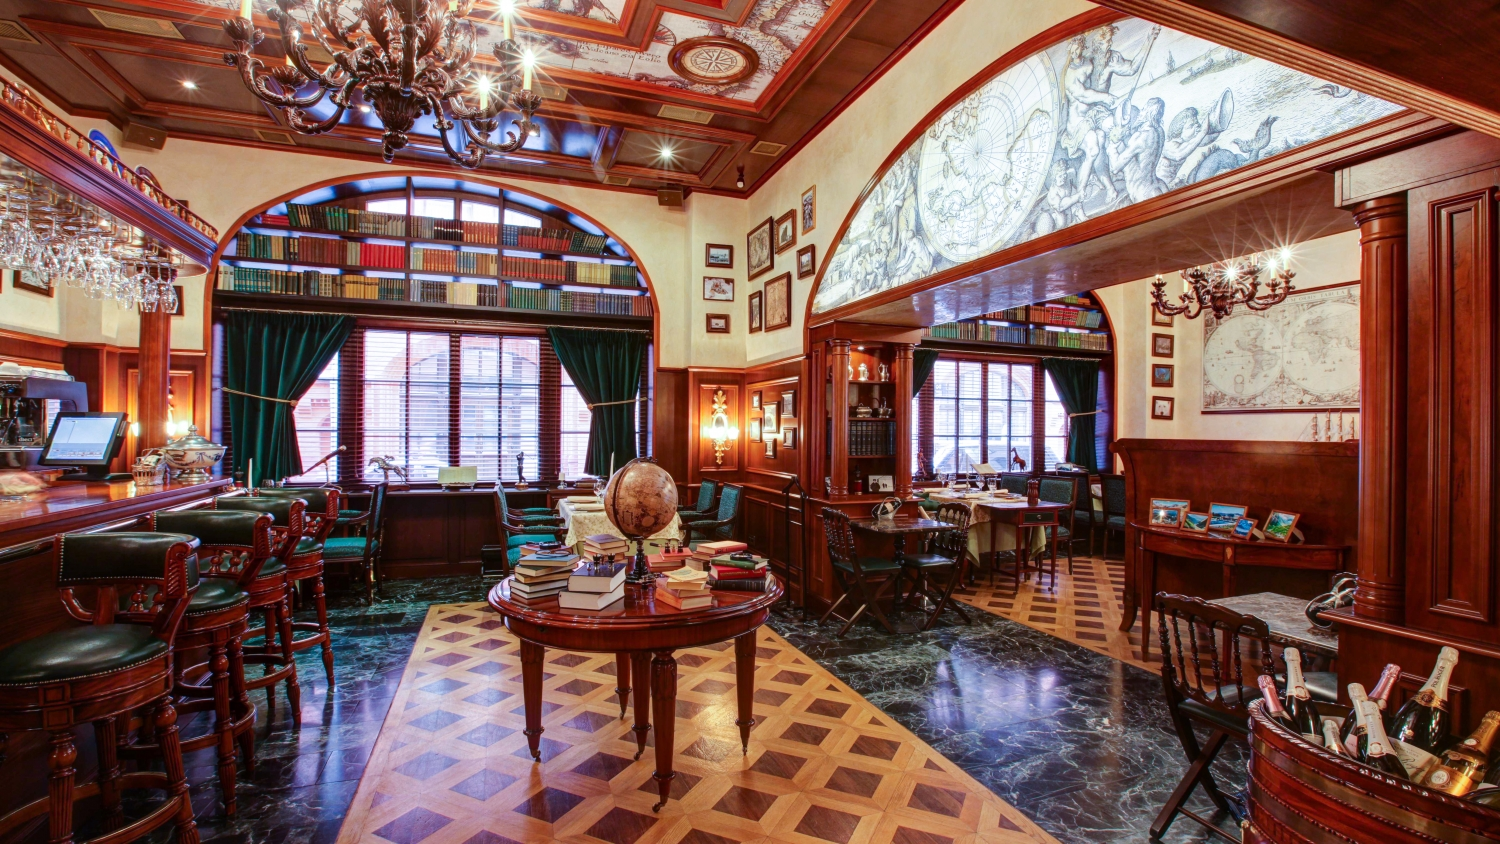 Russian geographic society restaurant in moscow my guide for Restaurant guide